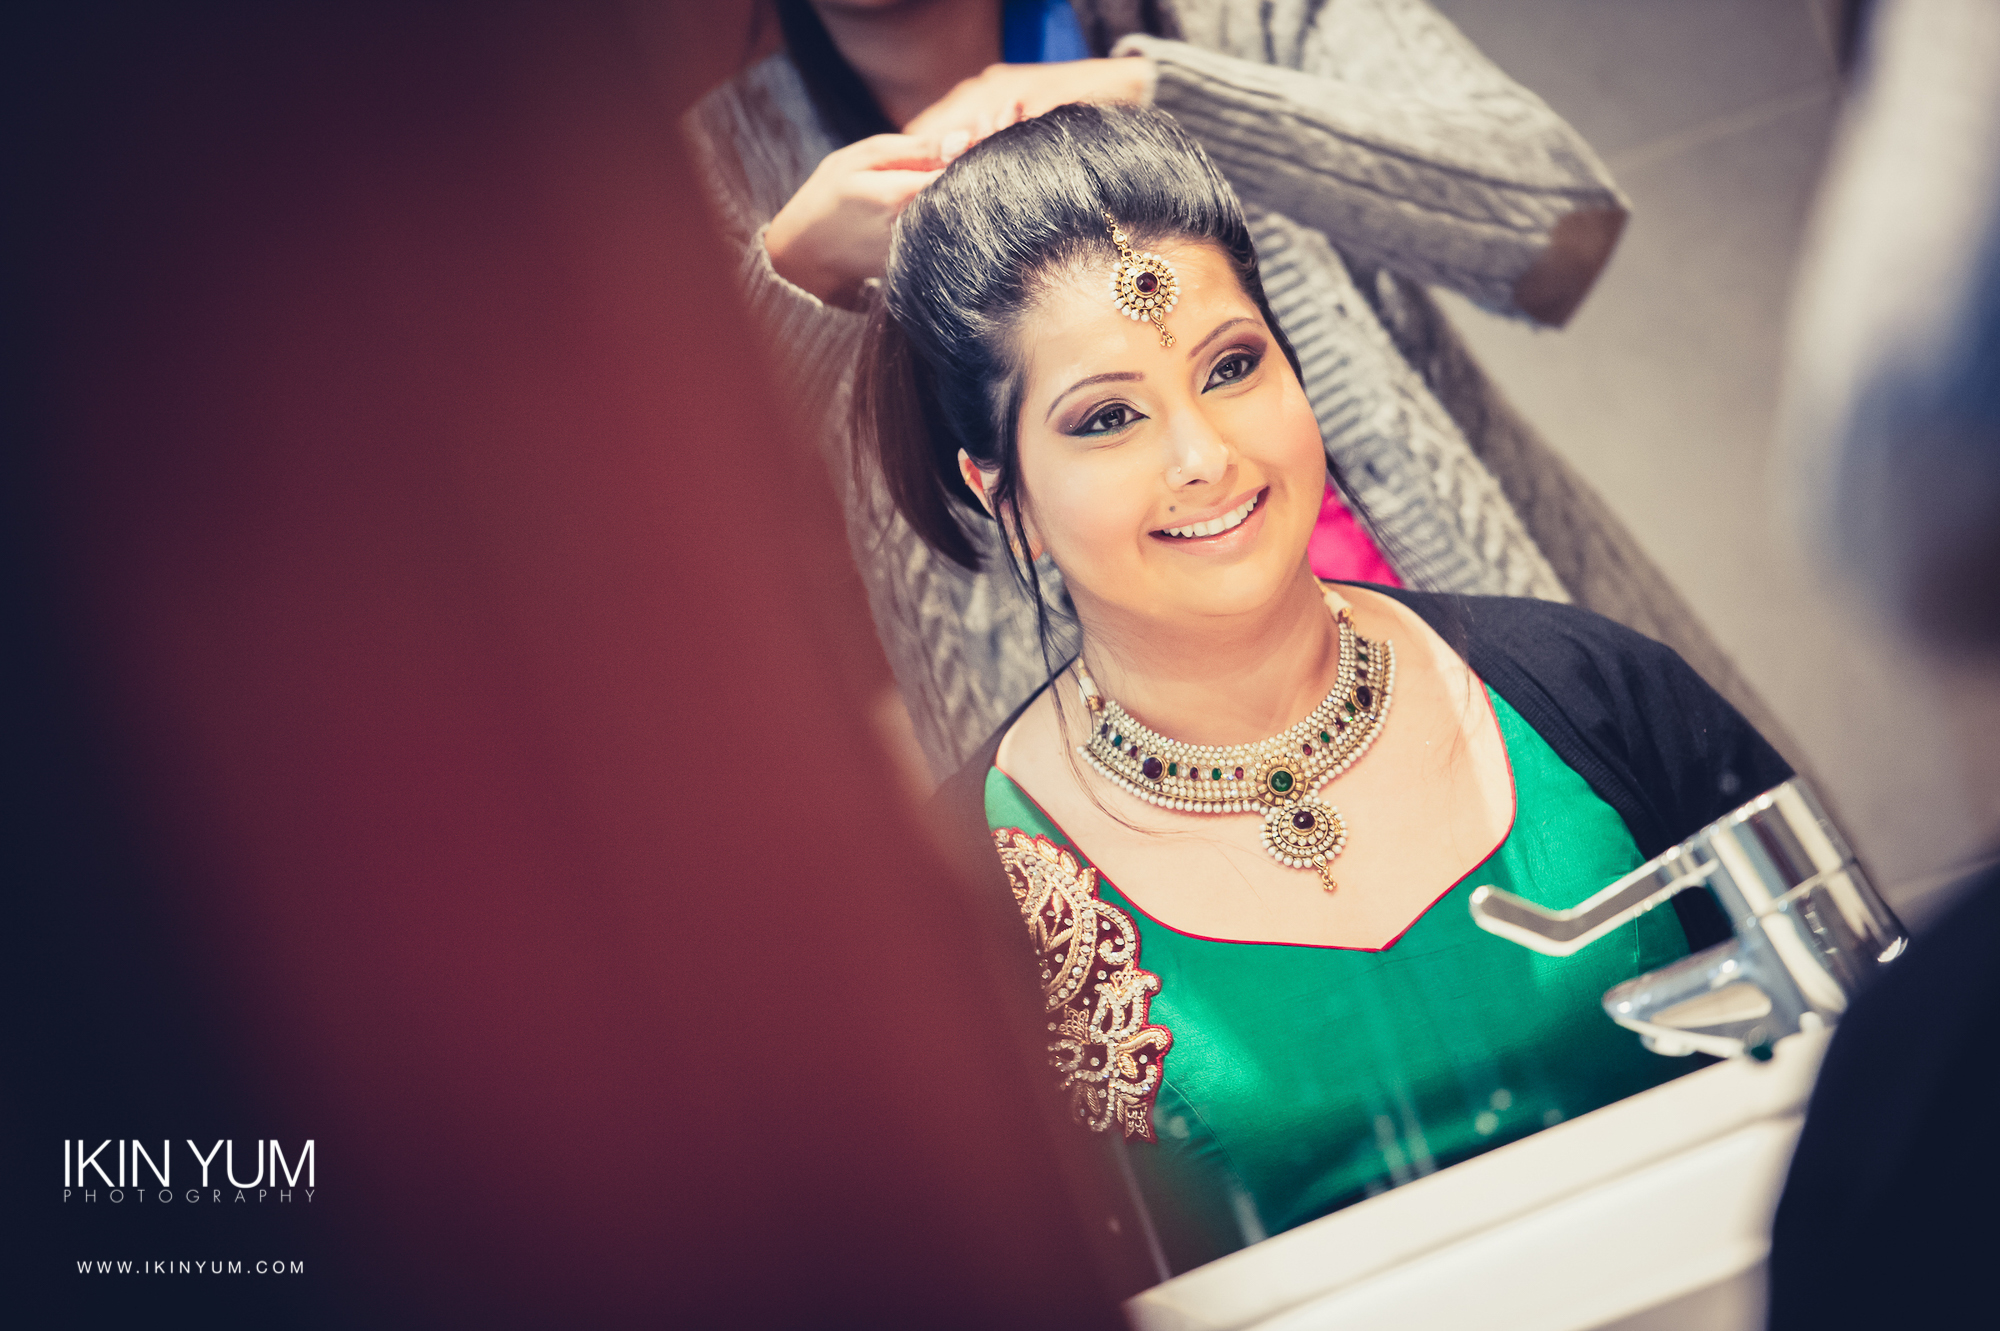 Grand Connaught Rooms Wedding - Minal & Raj - Ikin Yum Photography-008.jpg